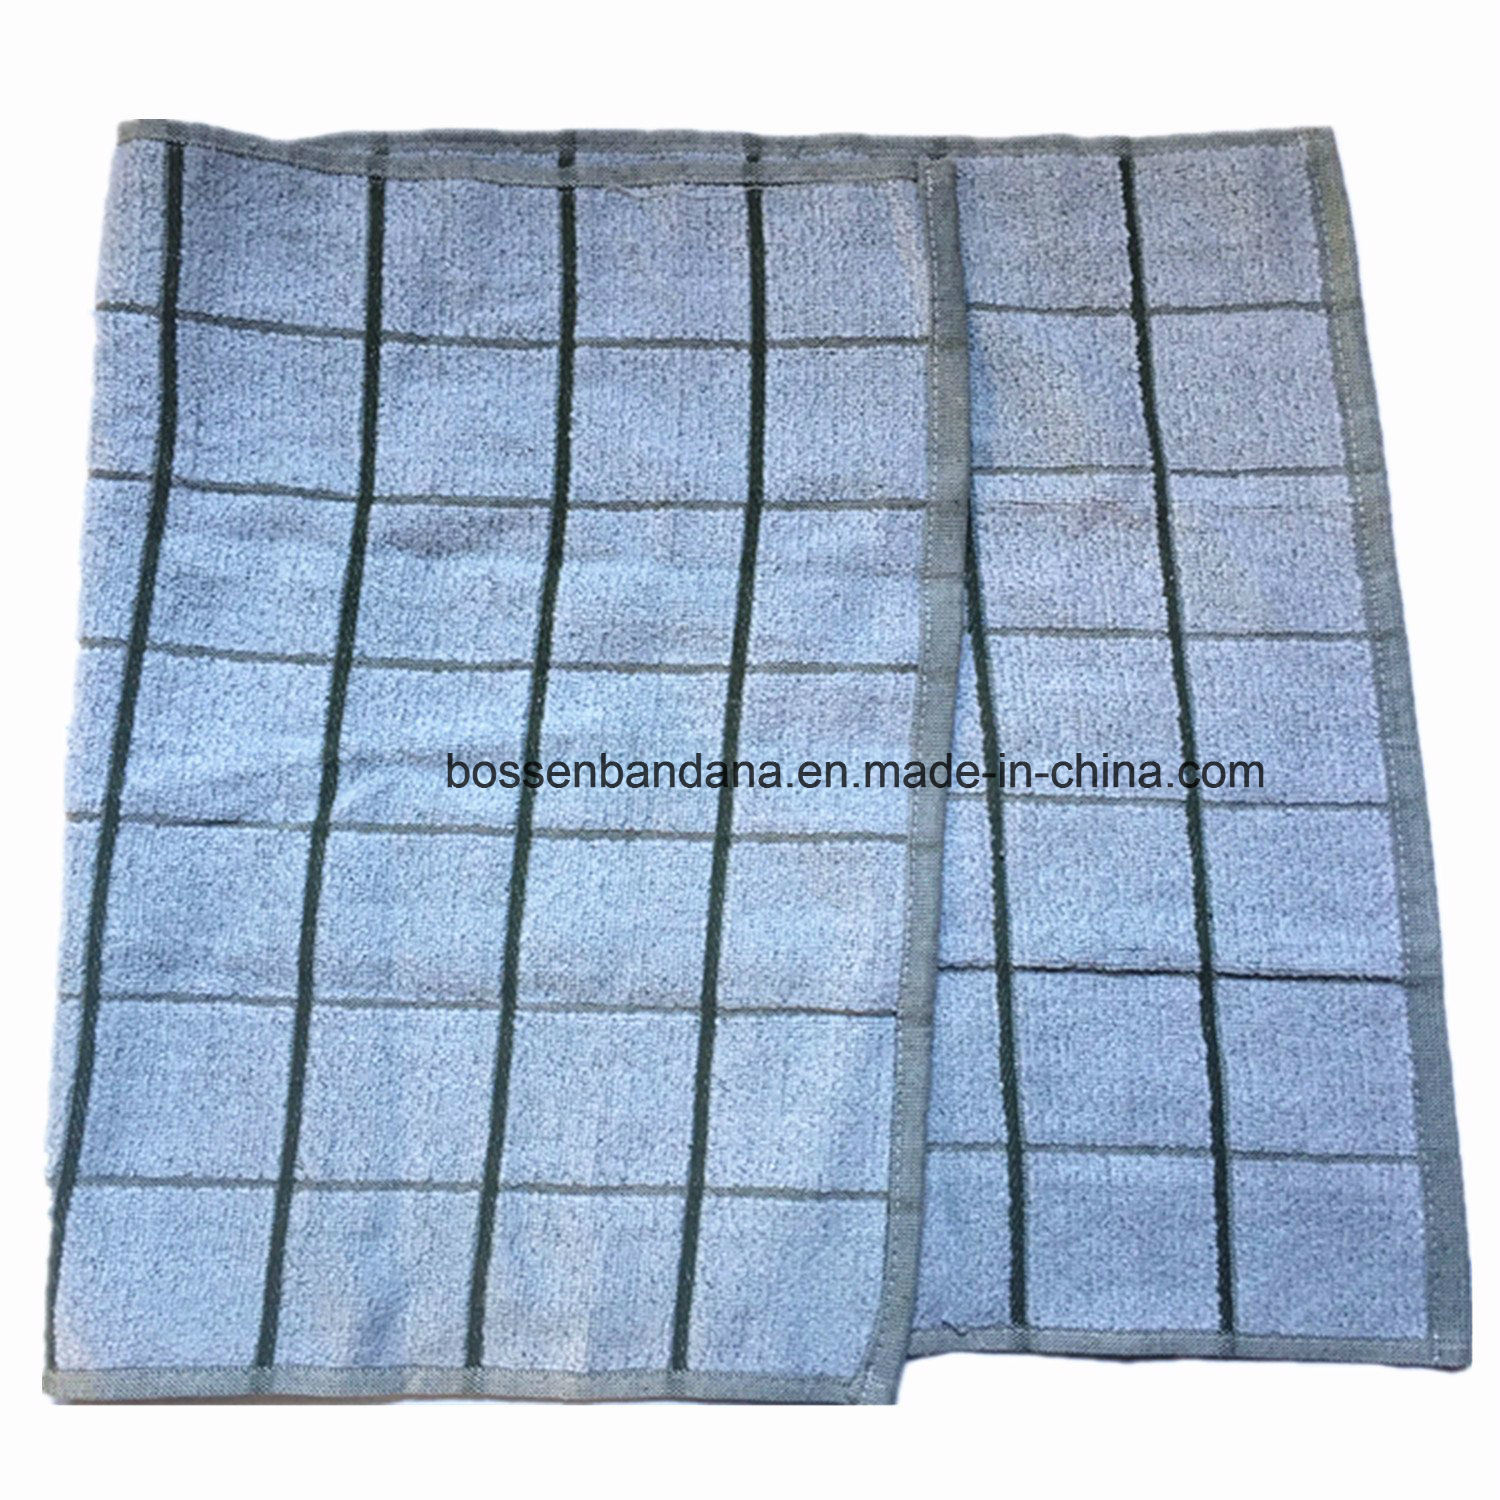 Wholesale Dish Towel - Buy Reliable Dish Towel from Dish Towel ...